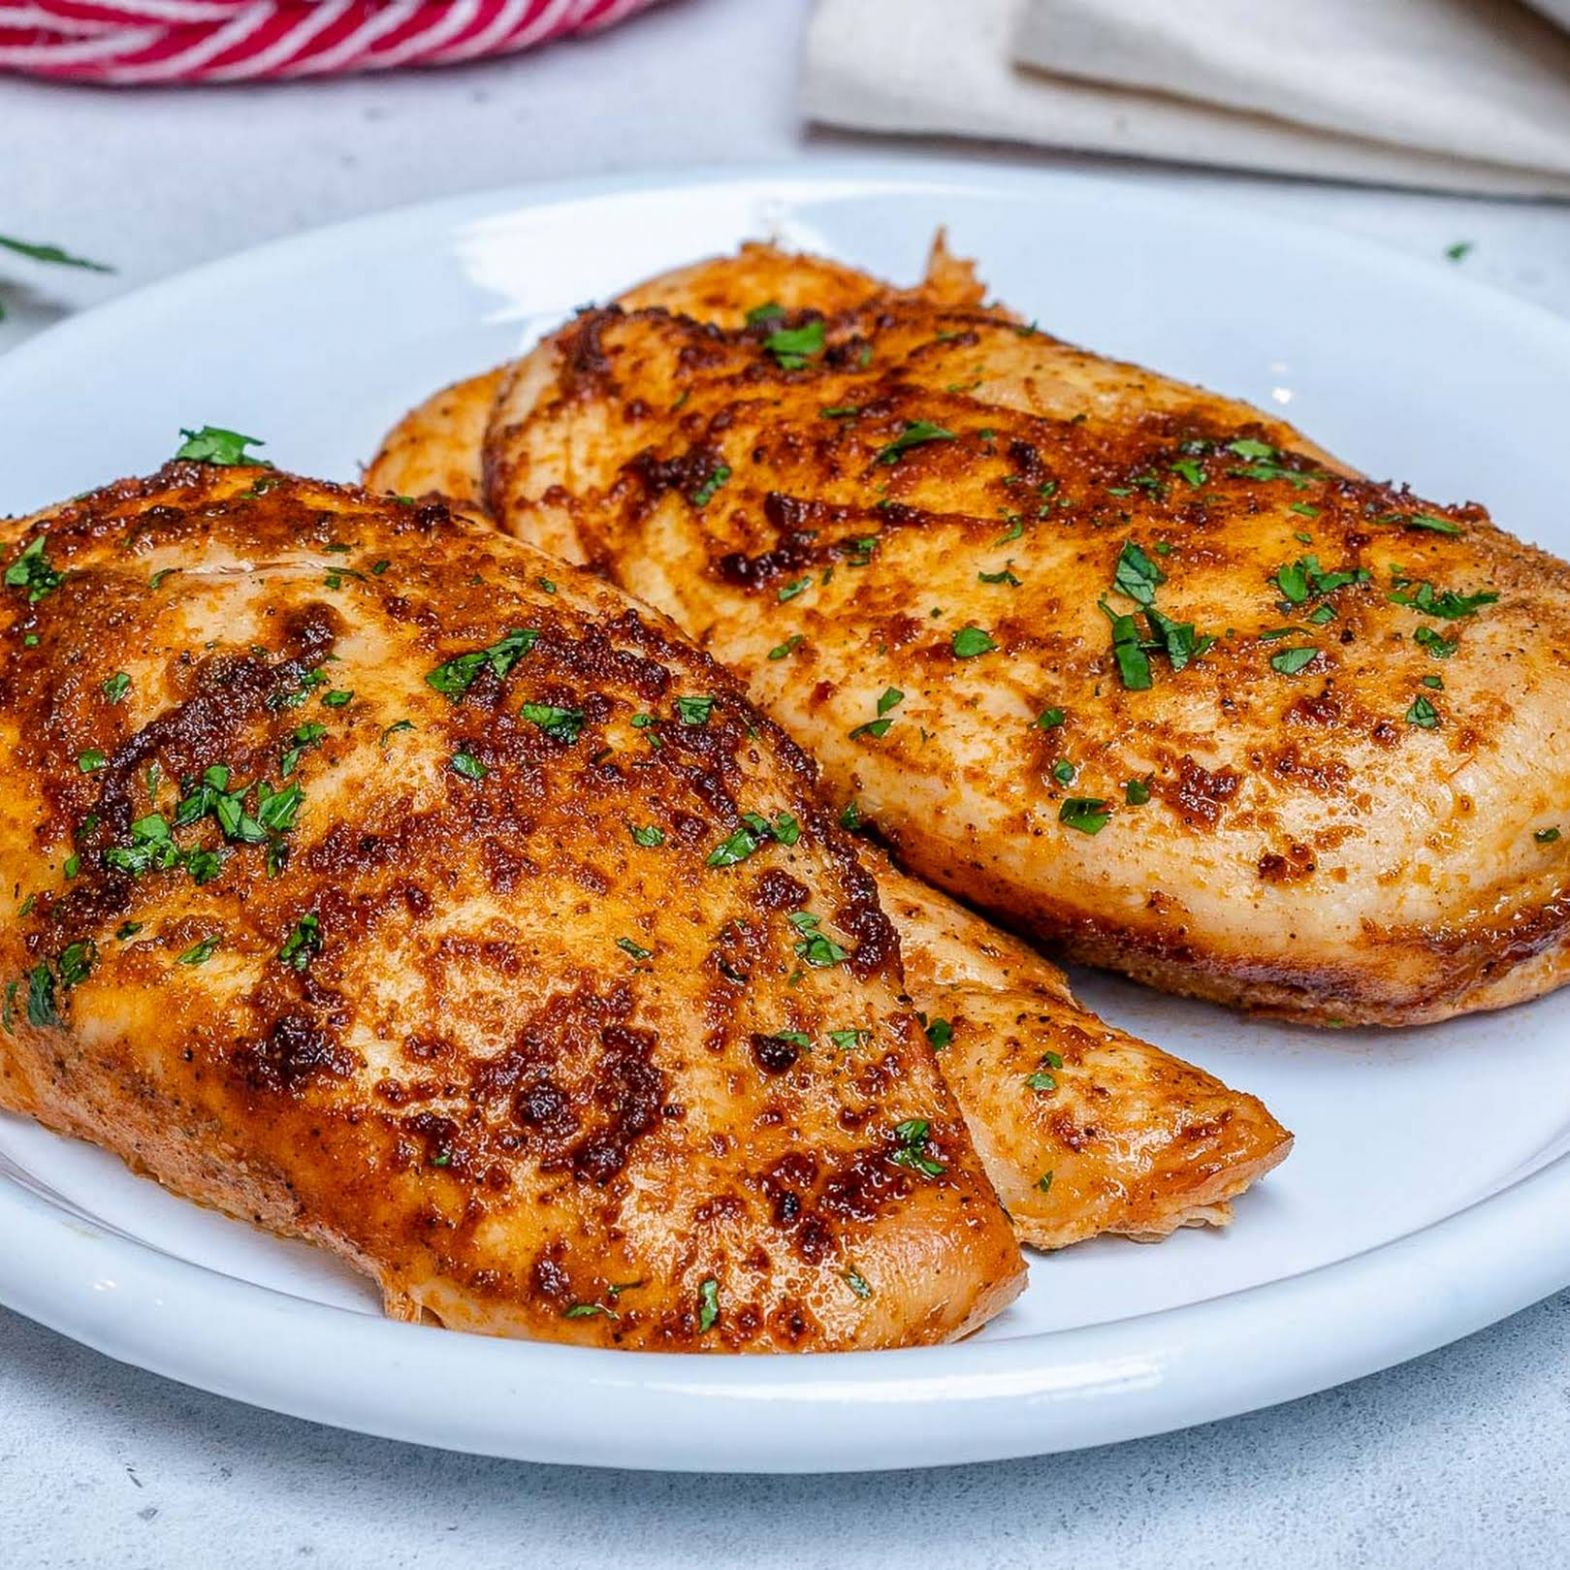 Juicy Baked Chicken Breasts - Chicken Breast Recipes Yummly